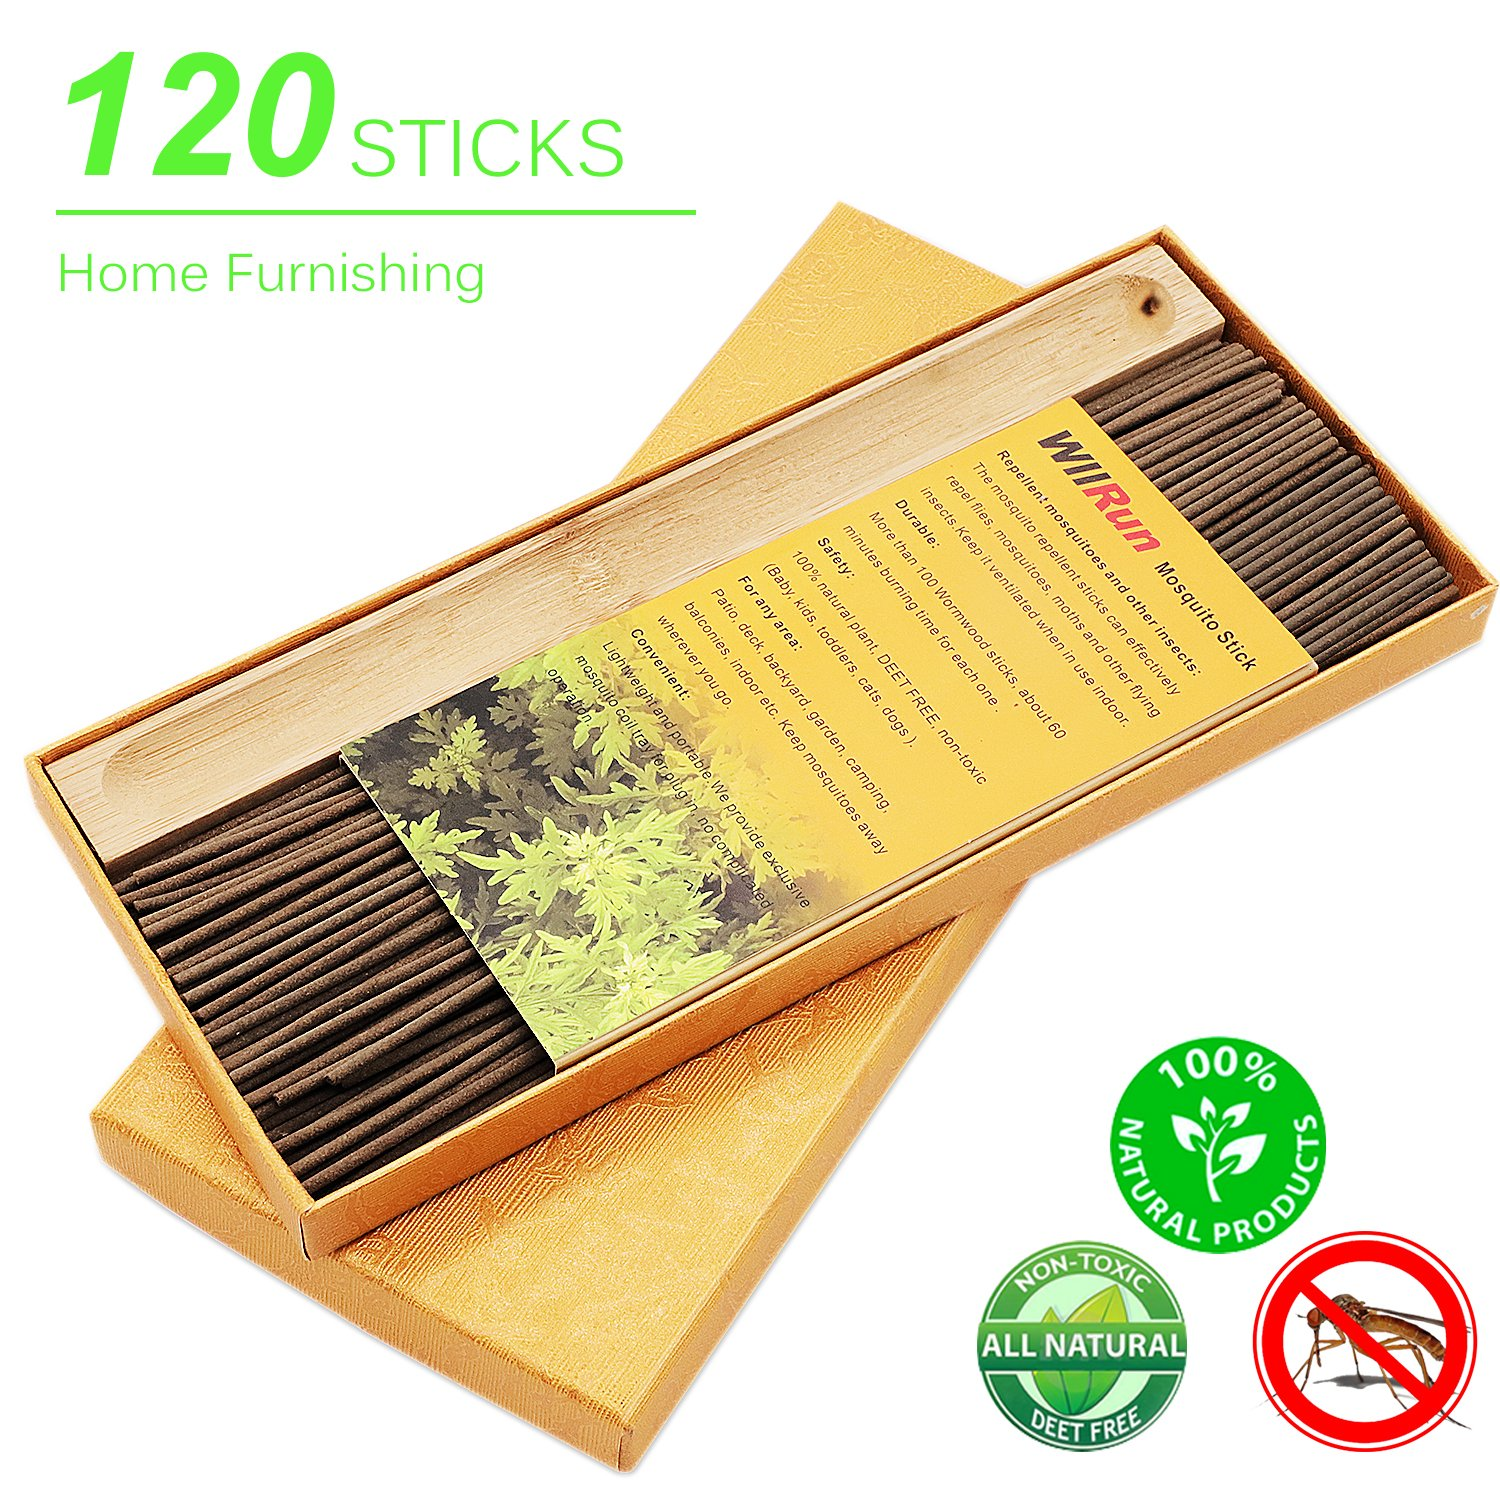 Amazon.com : WllRun Mosquito Repellent Sticks, DEET Free Outdoor Anti  Mosquito Repellent, 100% Natural With Artemisia Vulgaris Non Toxic Insert  Incense ...